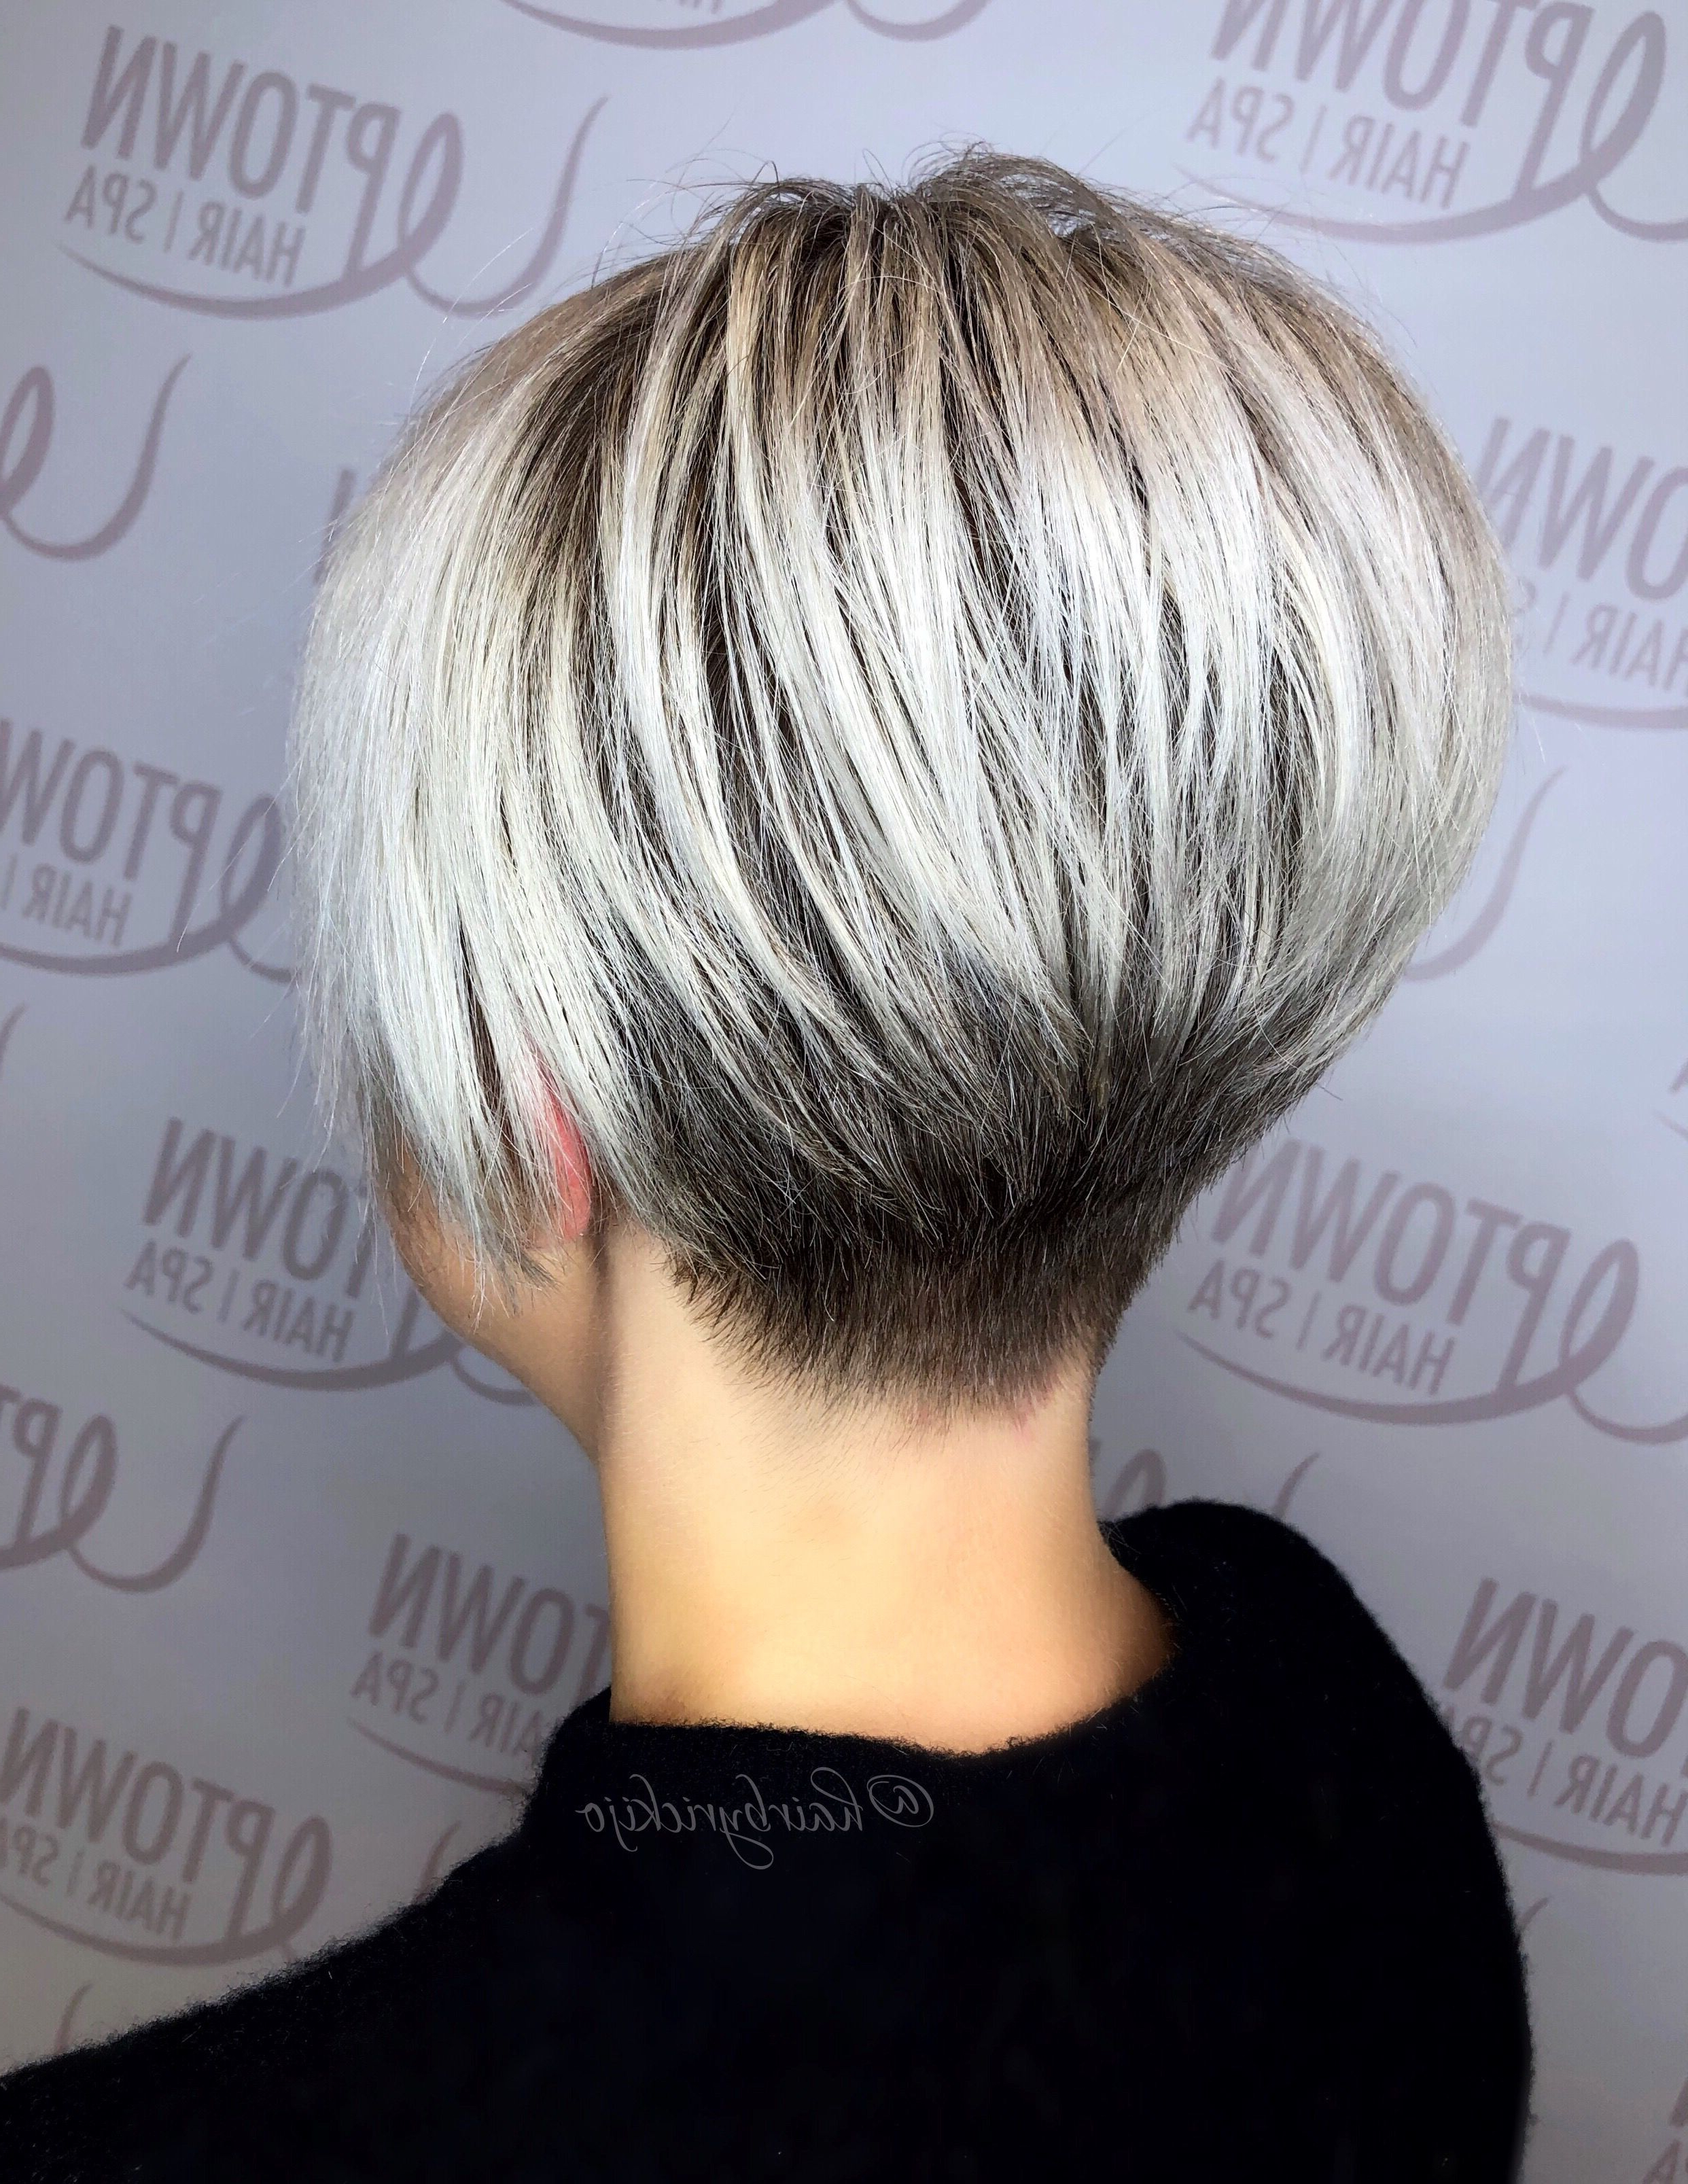 003 Short Silver Hairstyles Top Blonde Ladies Haircuts With Regard To Silver Short Bob Haircuts (View 18 of 20)